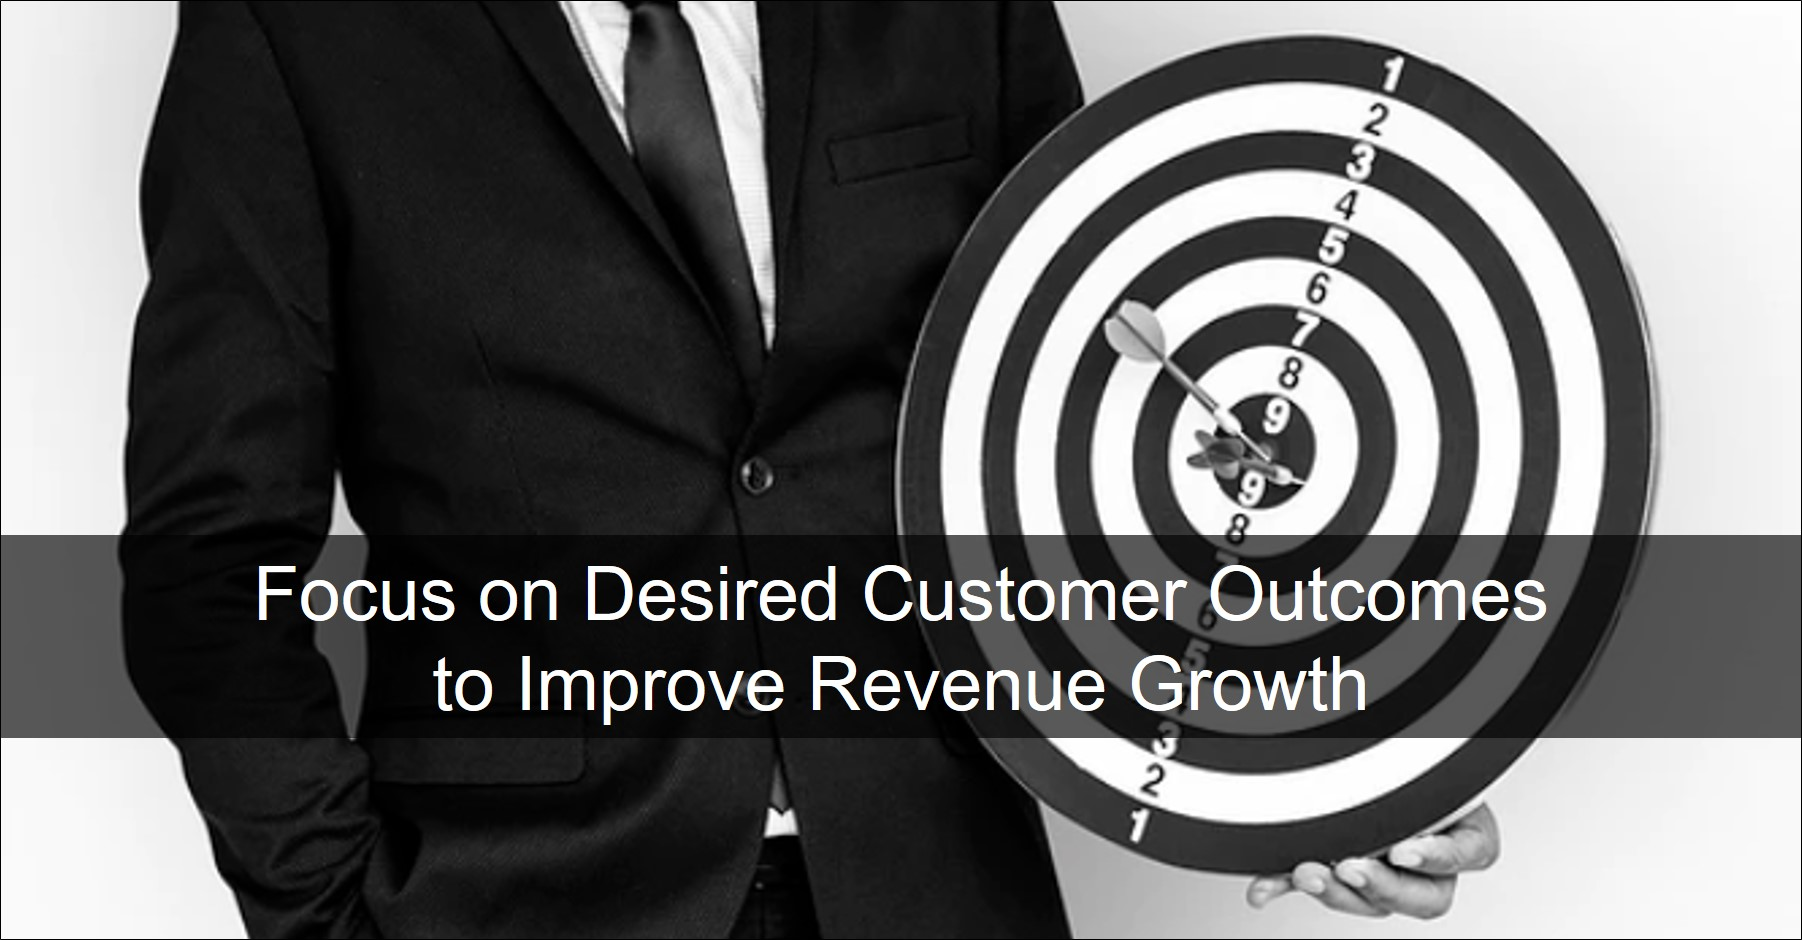 Focus on Desired Outcomes to Improve Revenue Growth